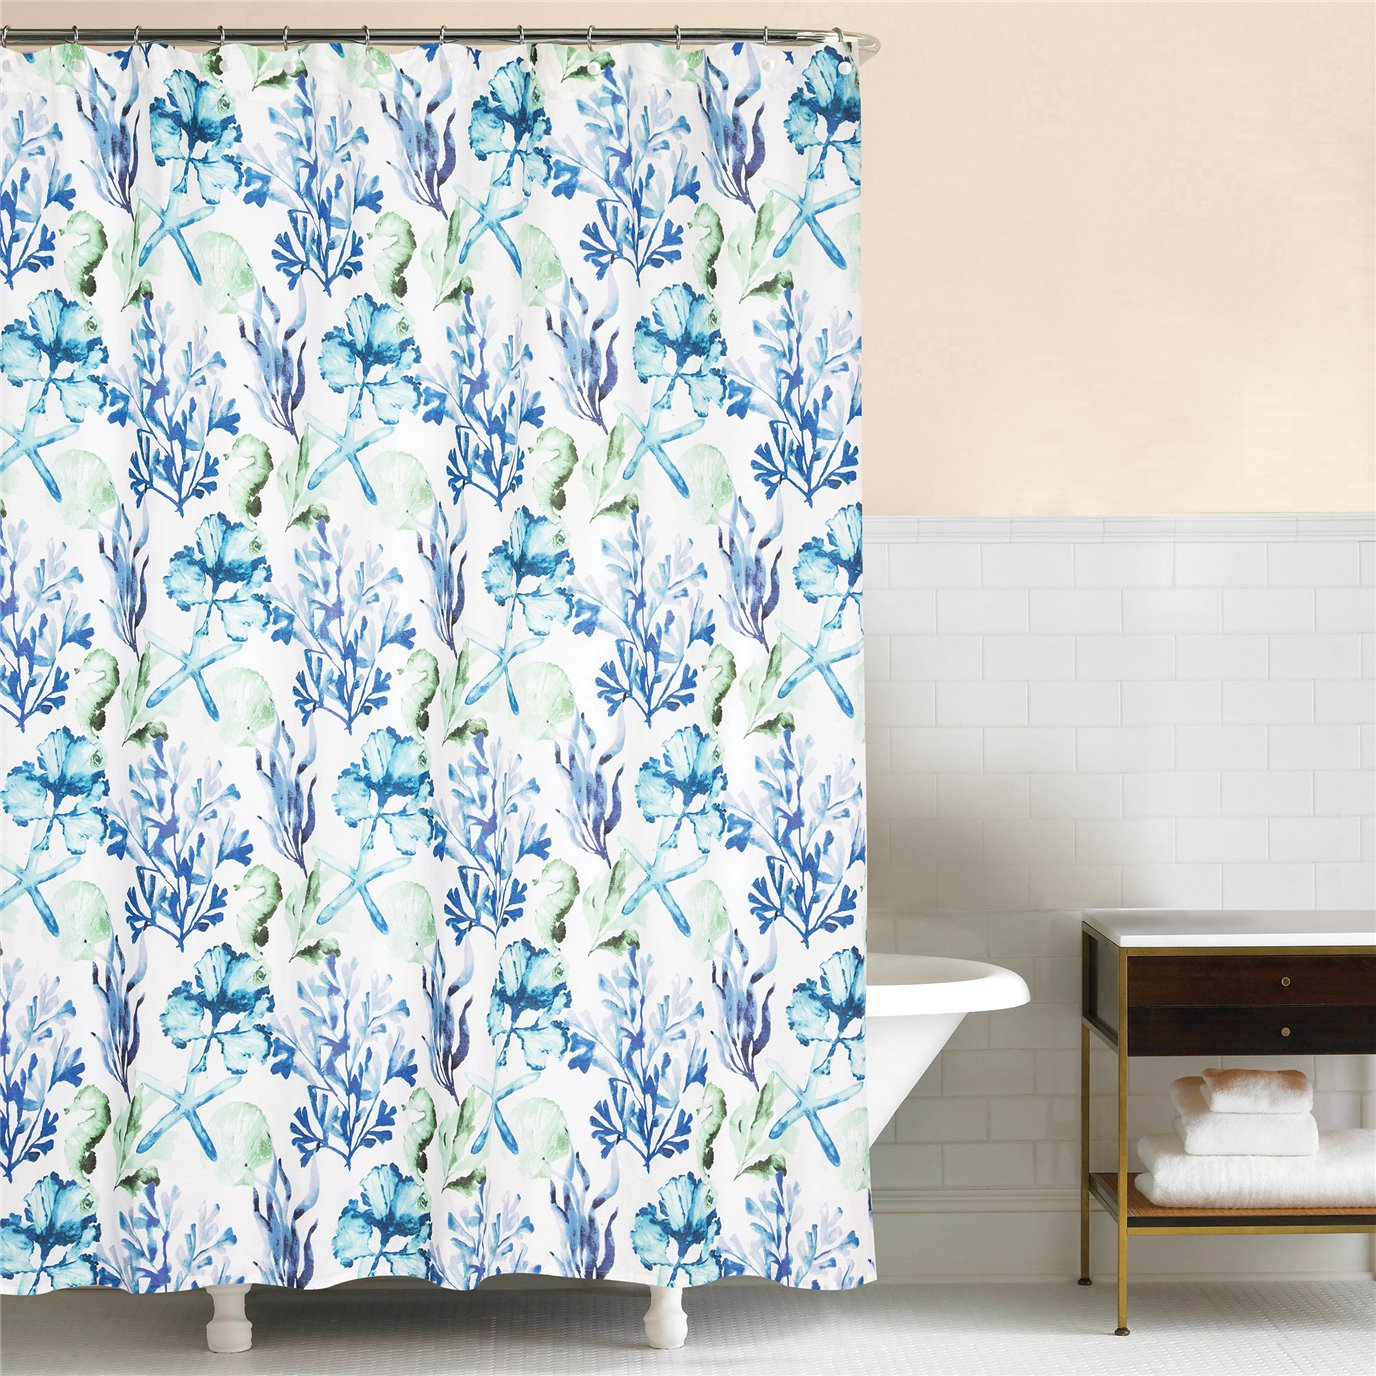 Bluewater Bay Shower Curtain